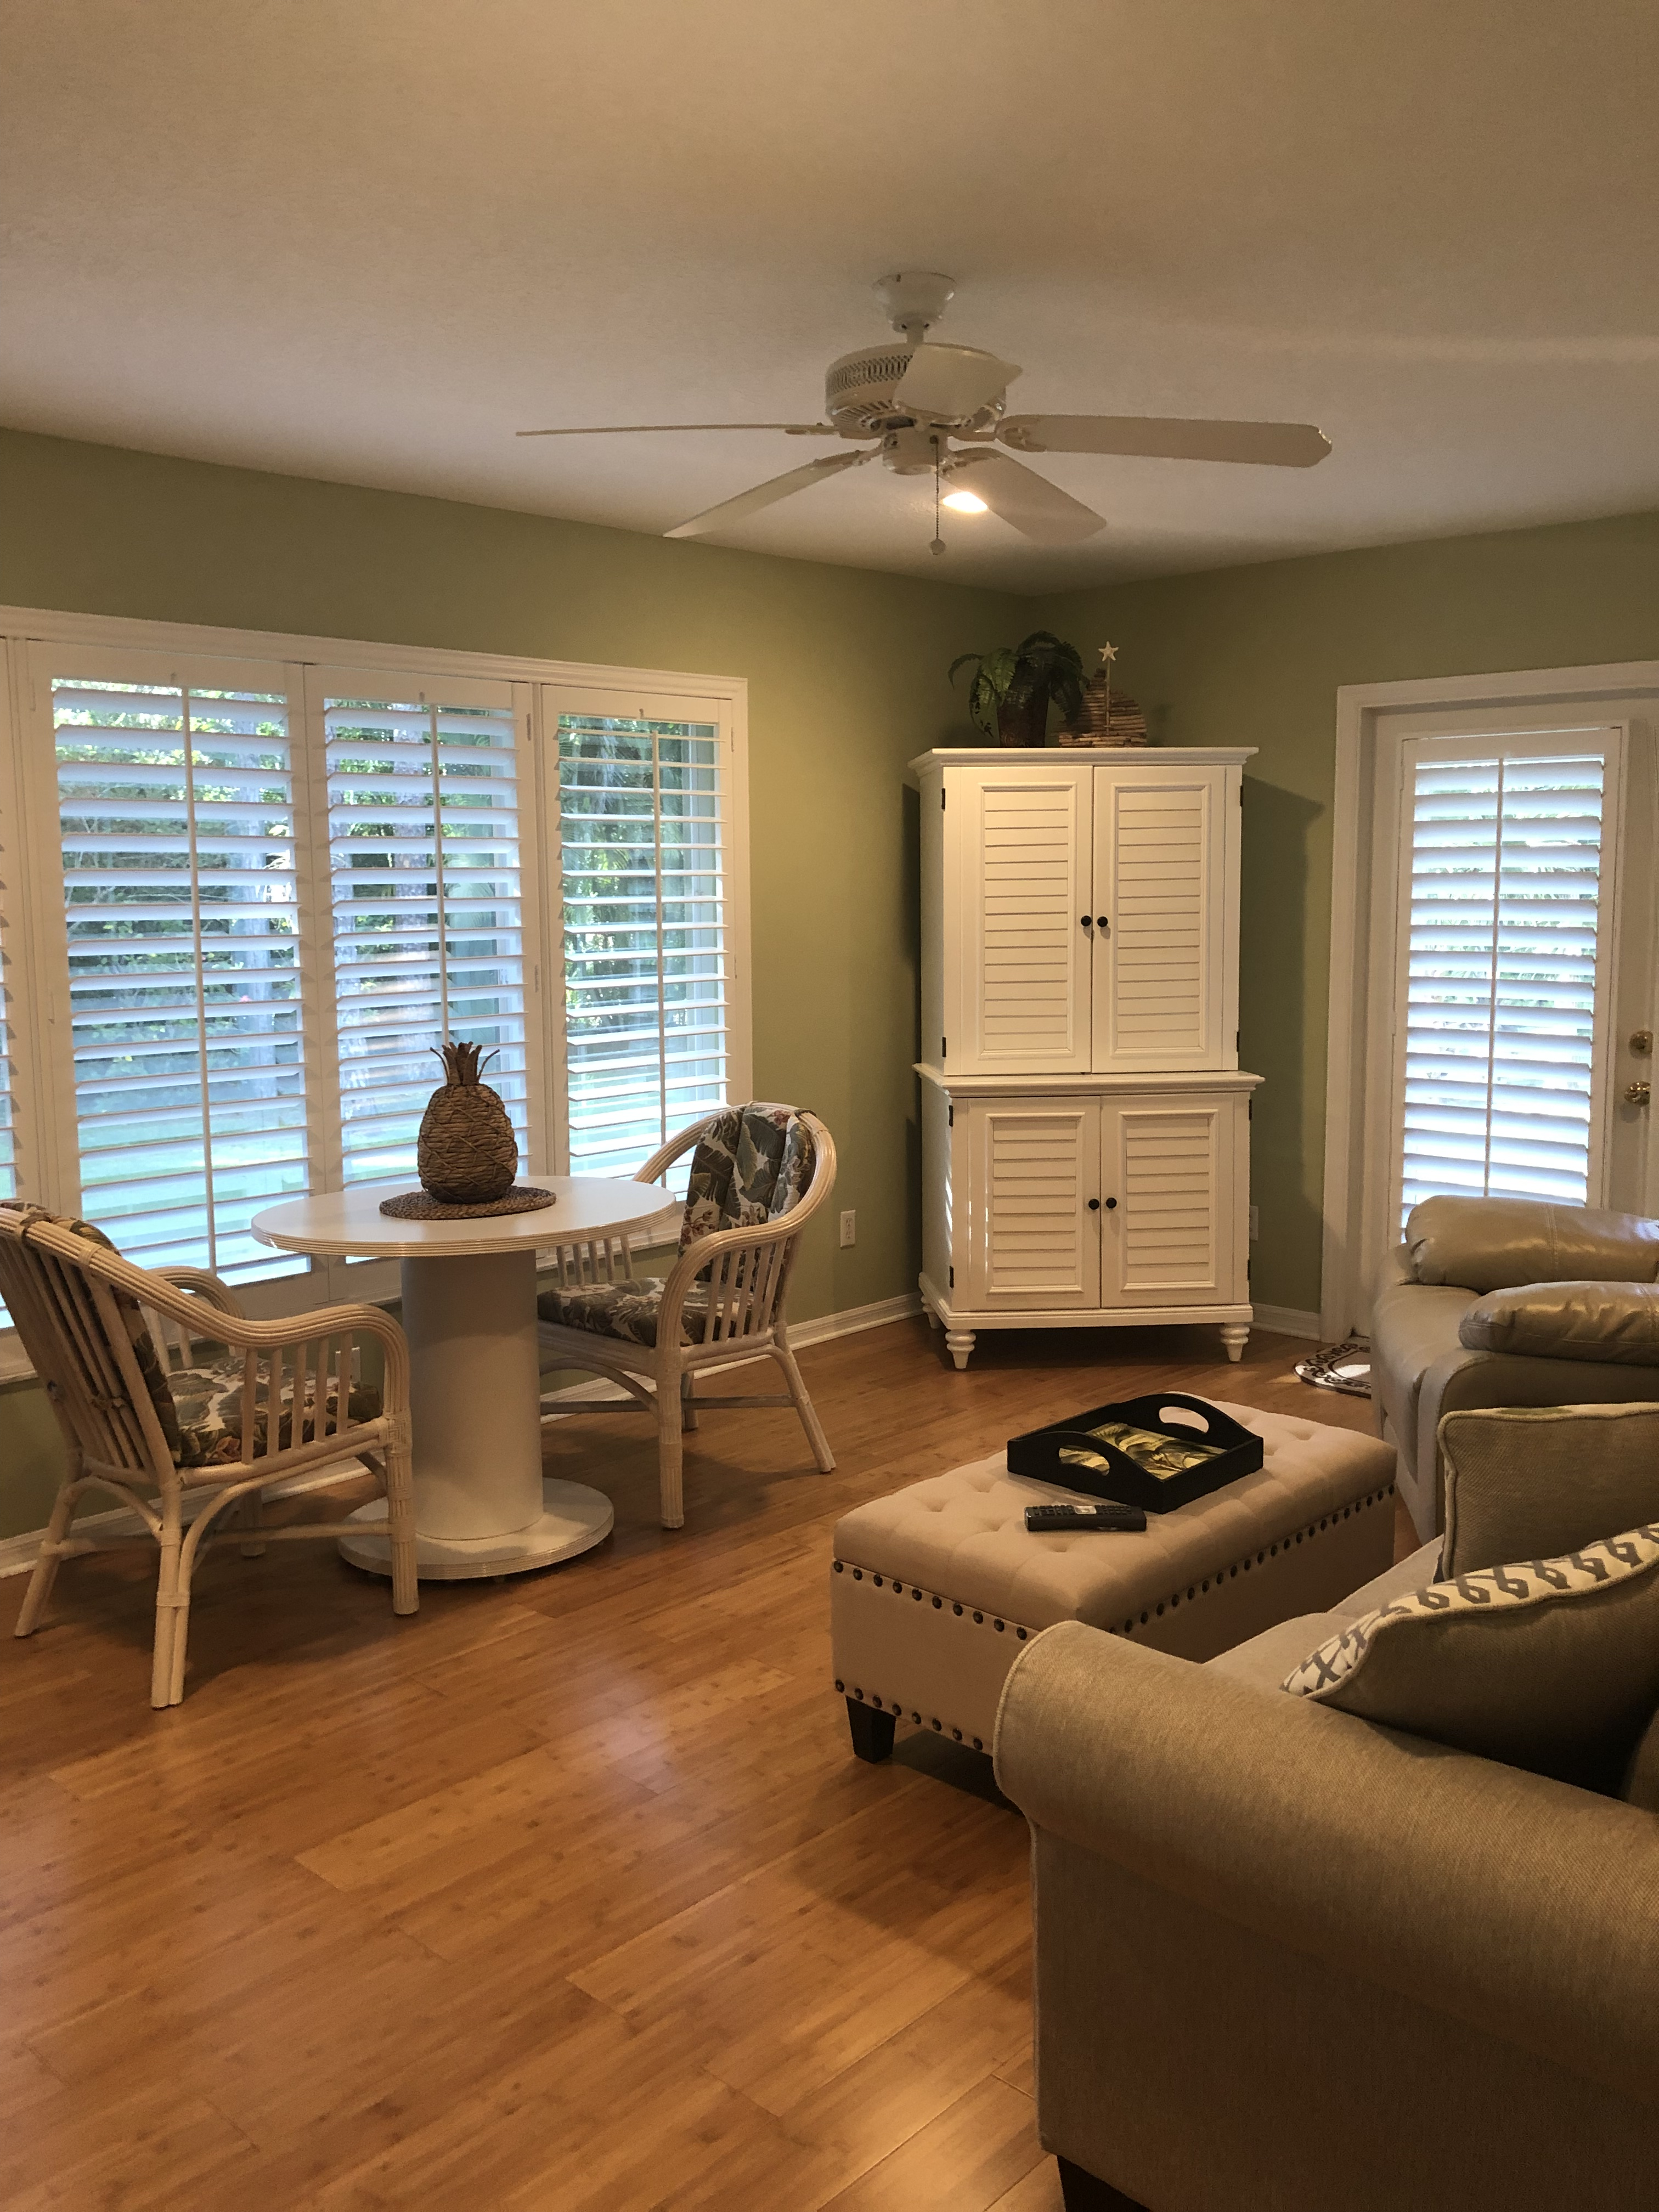 French Doors Plantation Shutters With Cutout For Handle Made